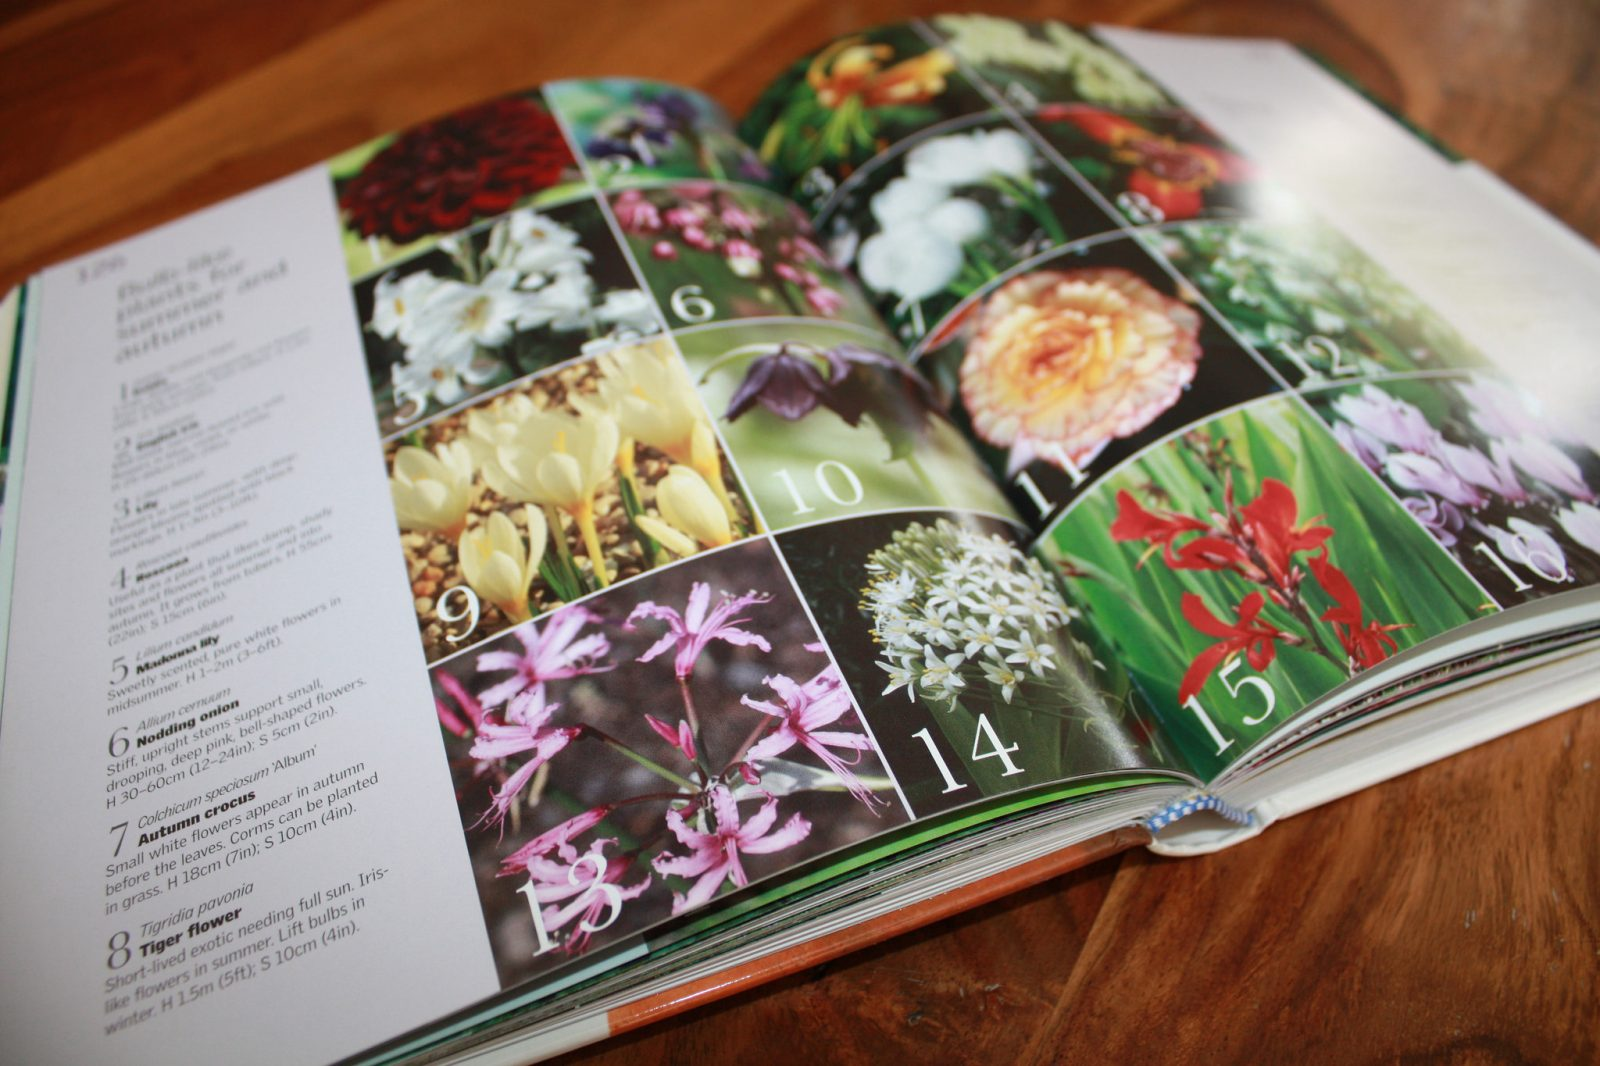 RHS - How to Garden Book